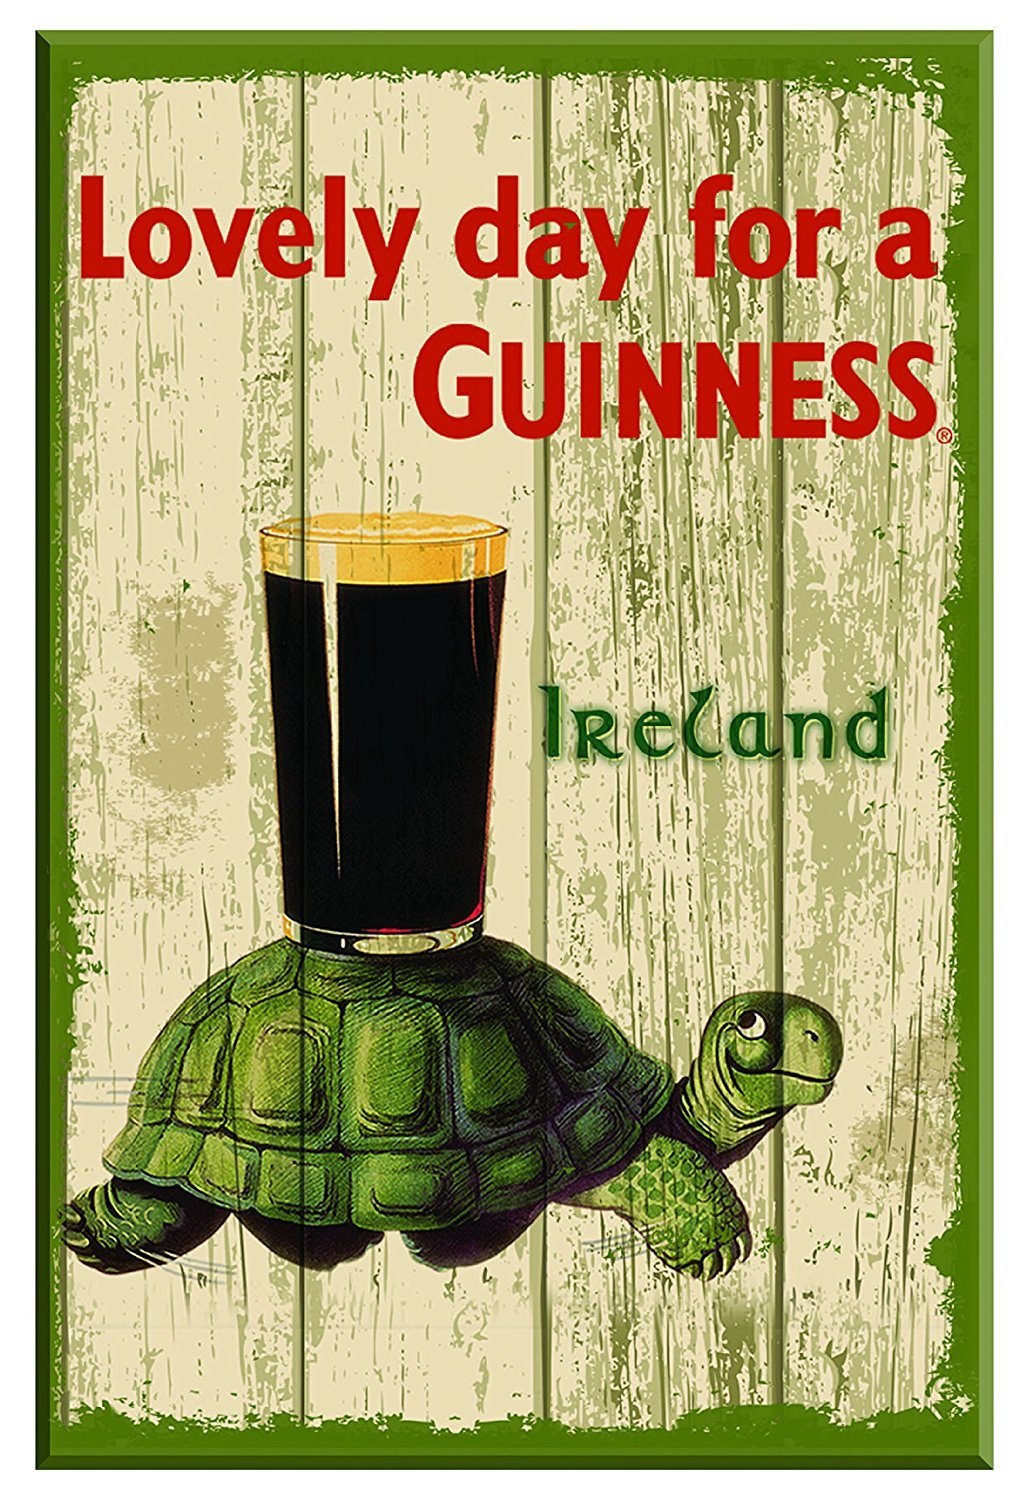 Amazon.com: Nostalgic Guinness Wooden Sign with Tortoise & Pint ...